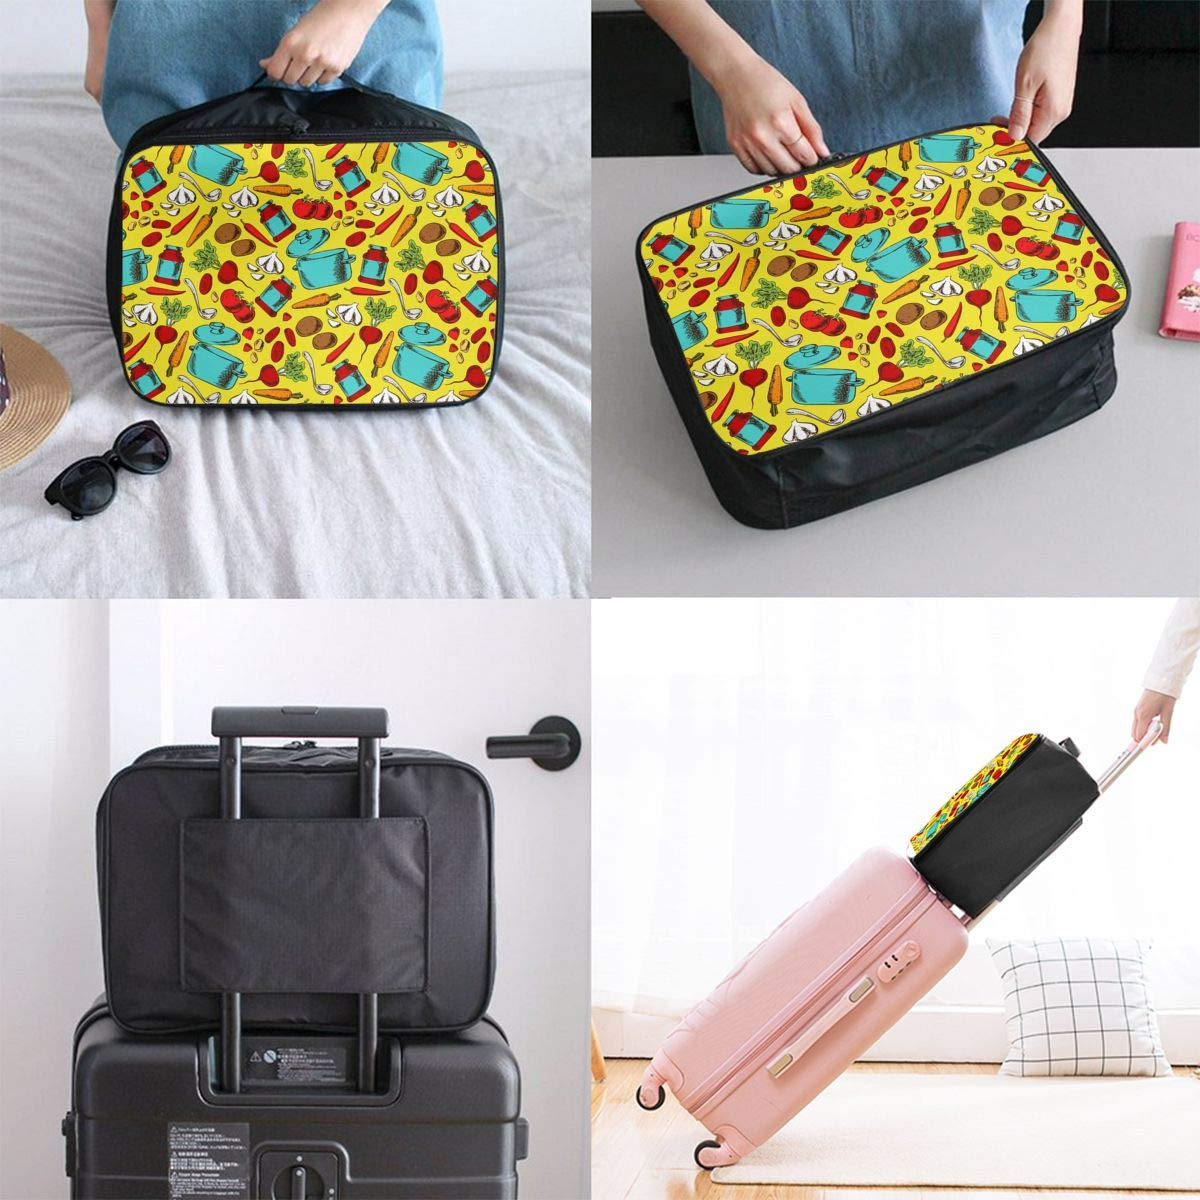 YueLJB Camper Cars Pattern Lightweight Large Capacity Portable Luggage Bag Travel Duffel Bag Storage Carry Luggage Duffle Tote Bag